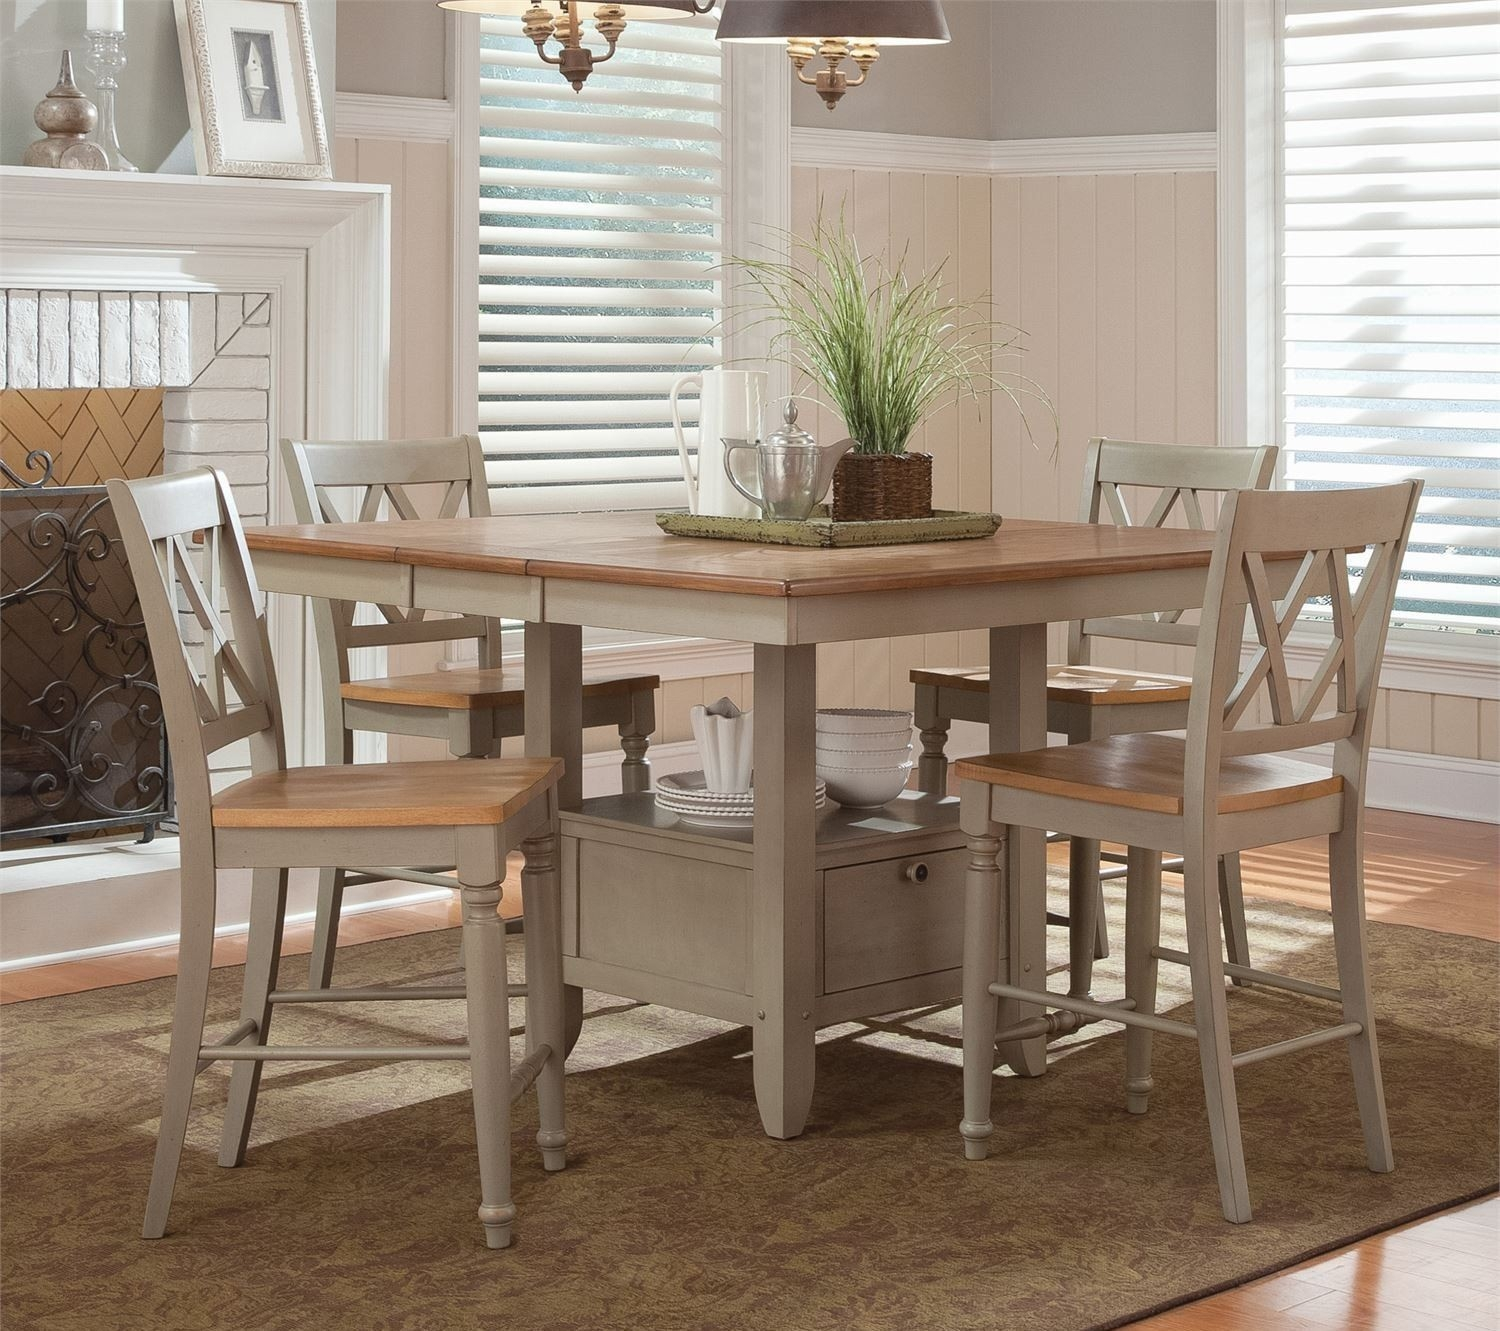 Light Wood Counter Height Dining Sets 6 .